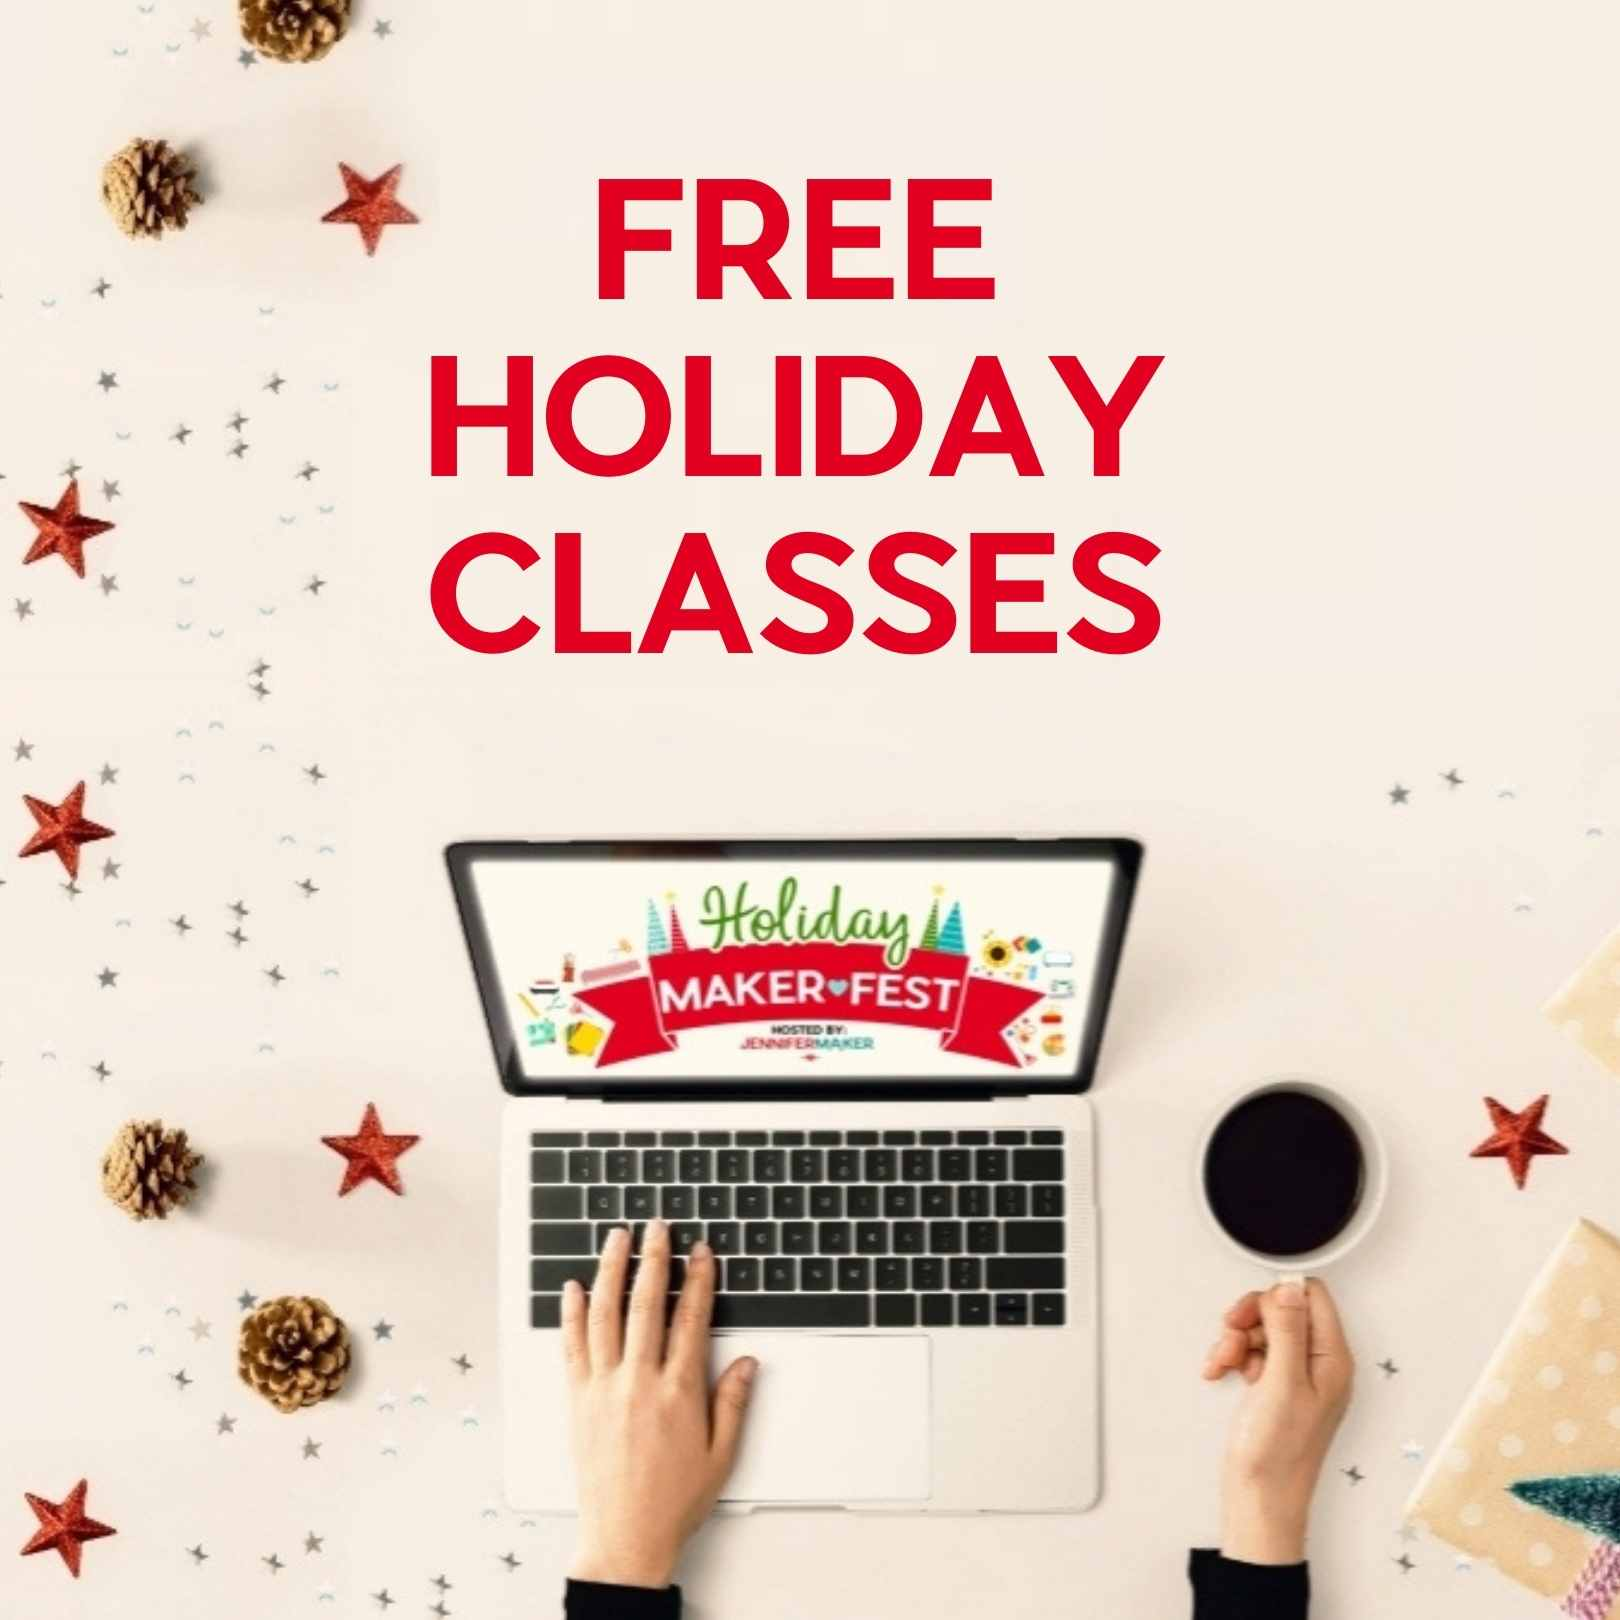 Signup for free holidays classes at the Holiday Maker Fest, November 4-8, 2020